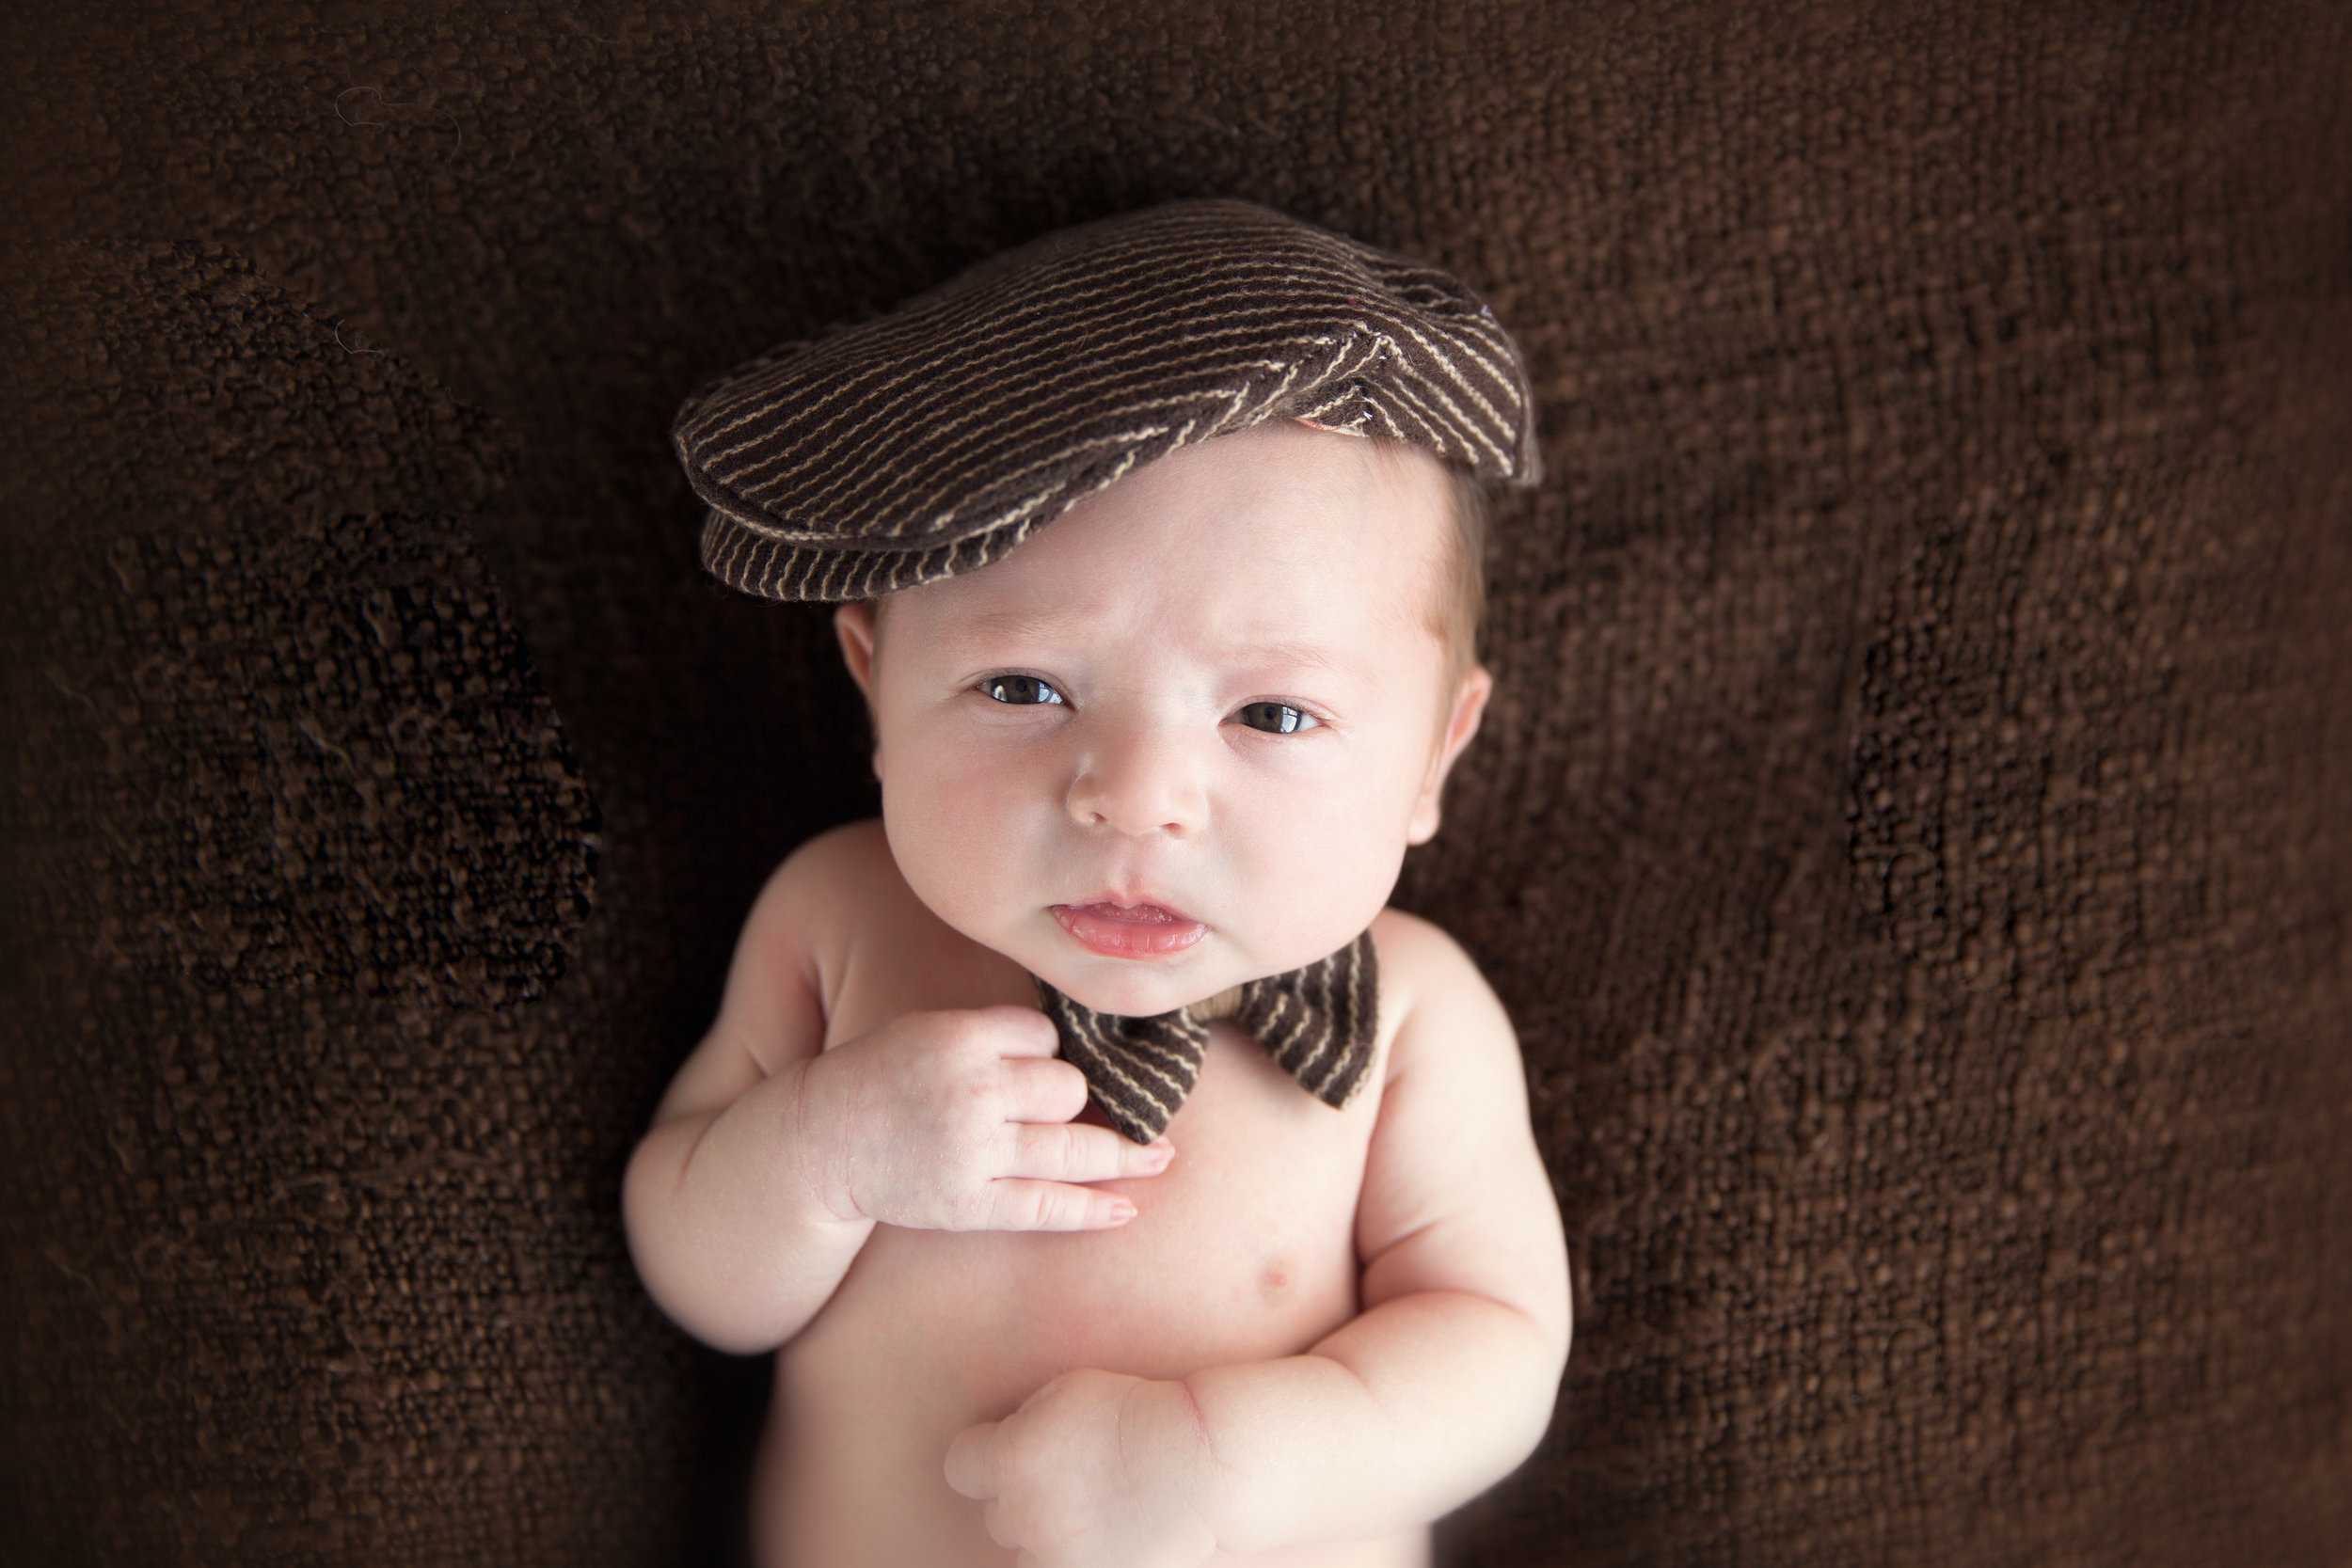 Newborn baby boy wearing old man hat and a bow-tie. Calgary Newborn photographer. Milashka Photography